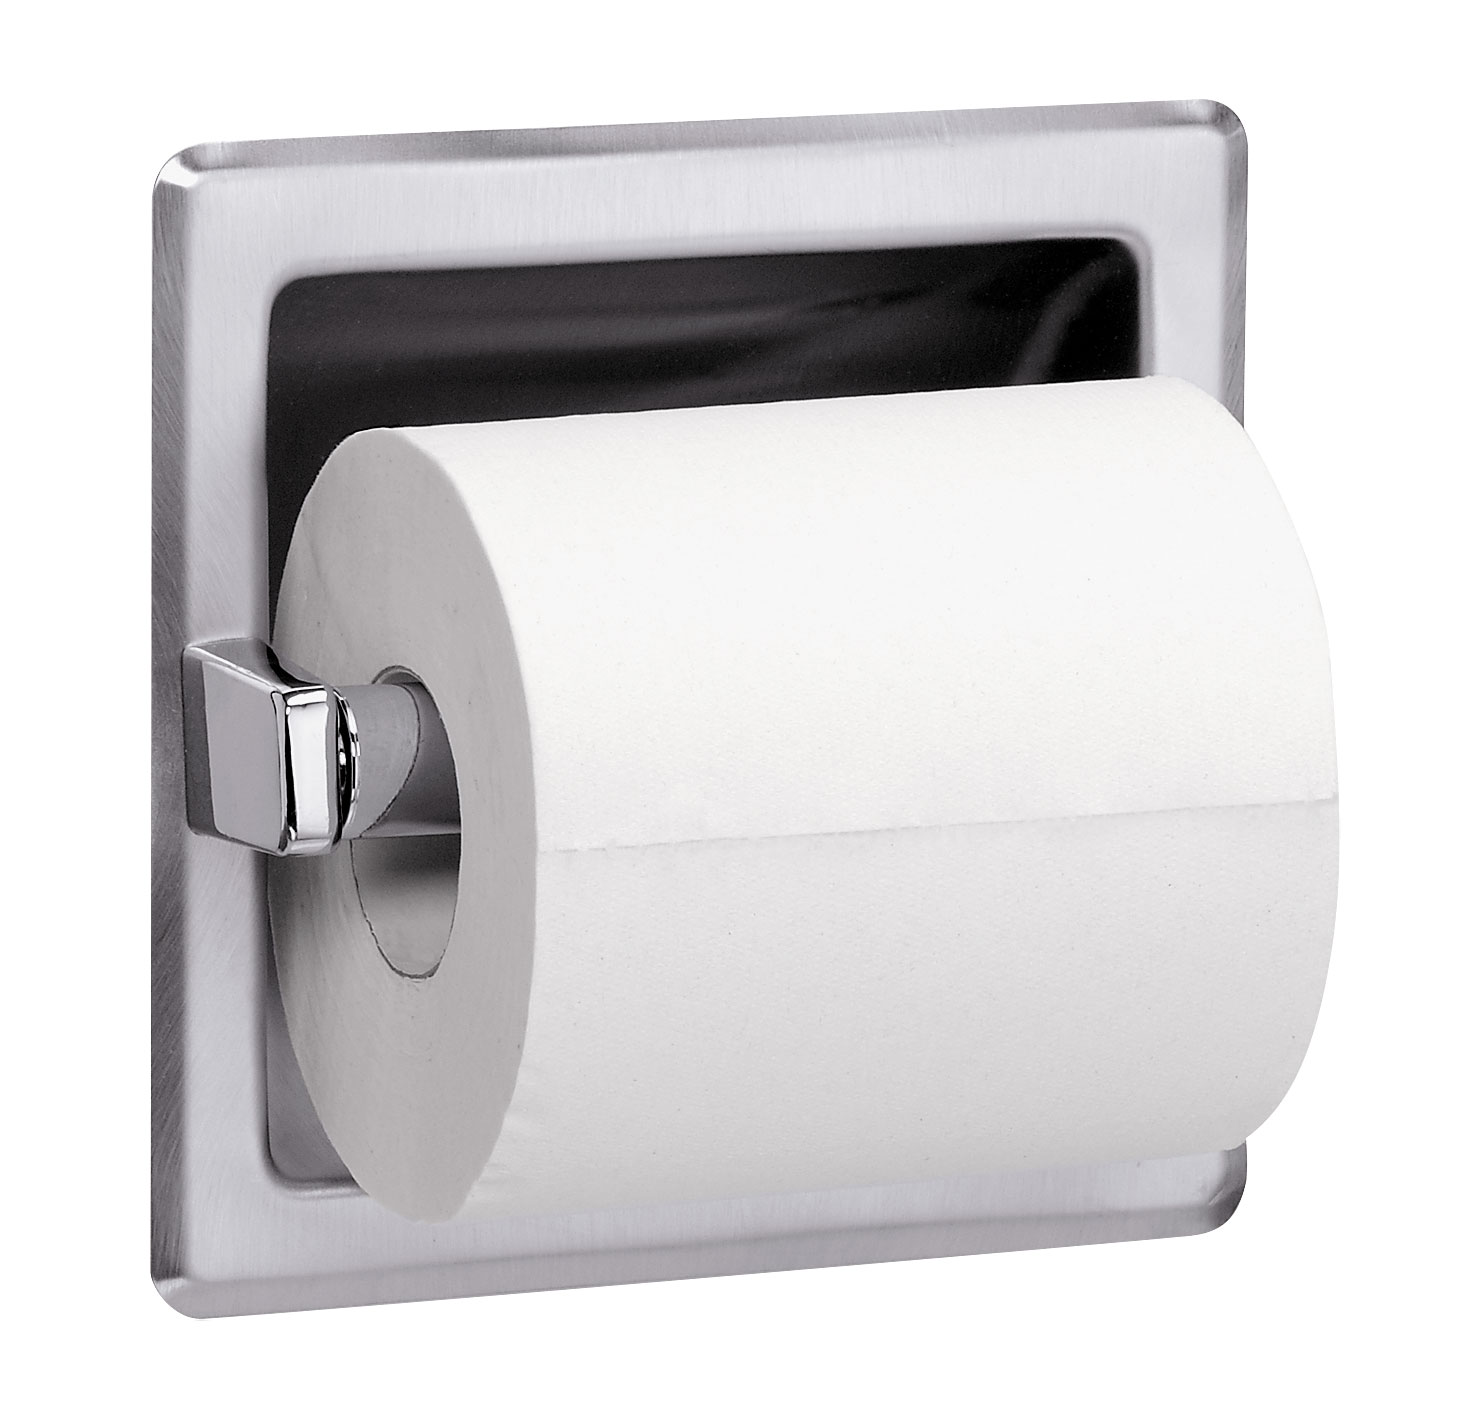 Bradley 5104 Recessed Single Roll Toilet Paper Dispenser